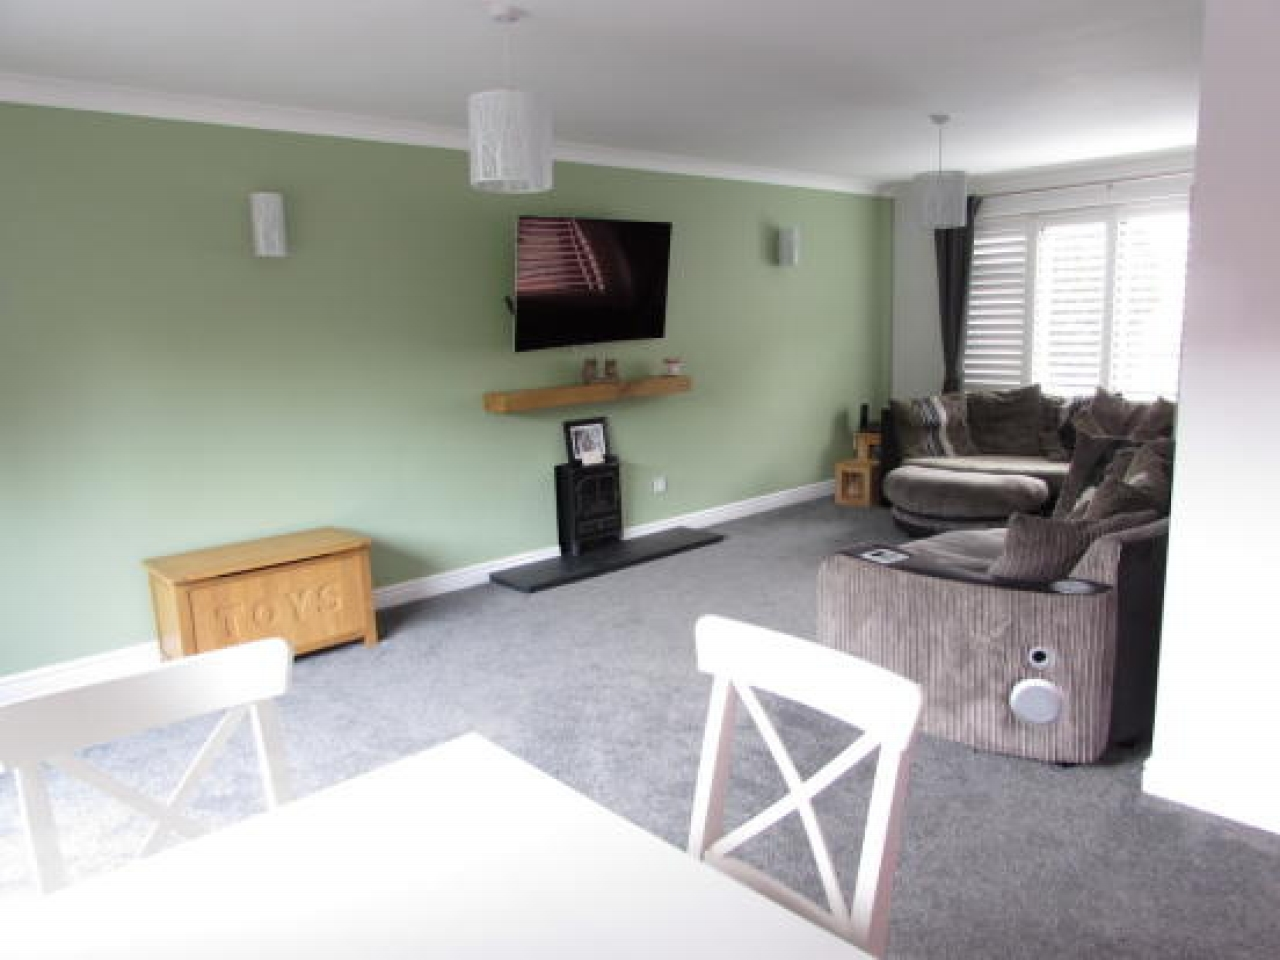 4 bedroom detached house SSTC in Solihull - photograph 2.